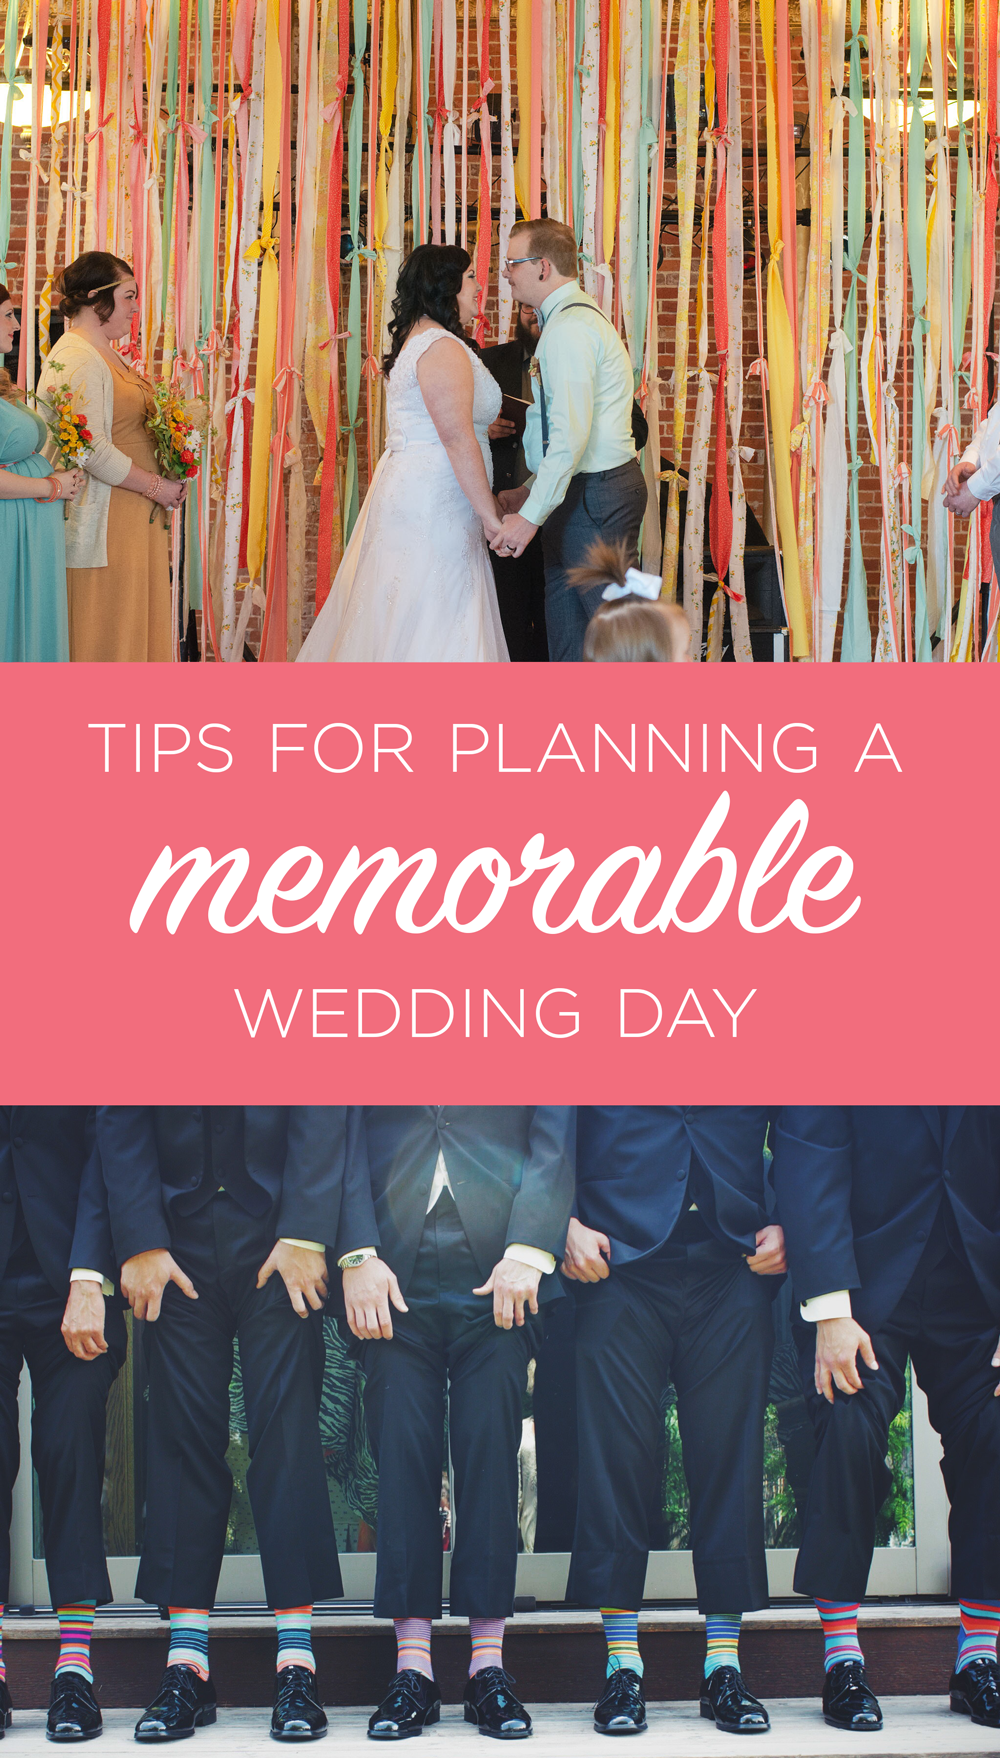 How To Plan A Wedding People Will Remember For Years | The Budget ...